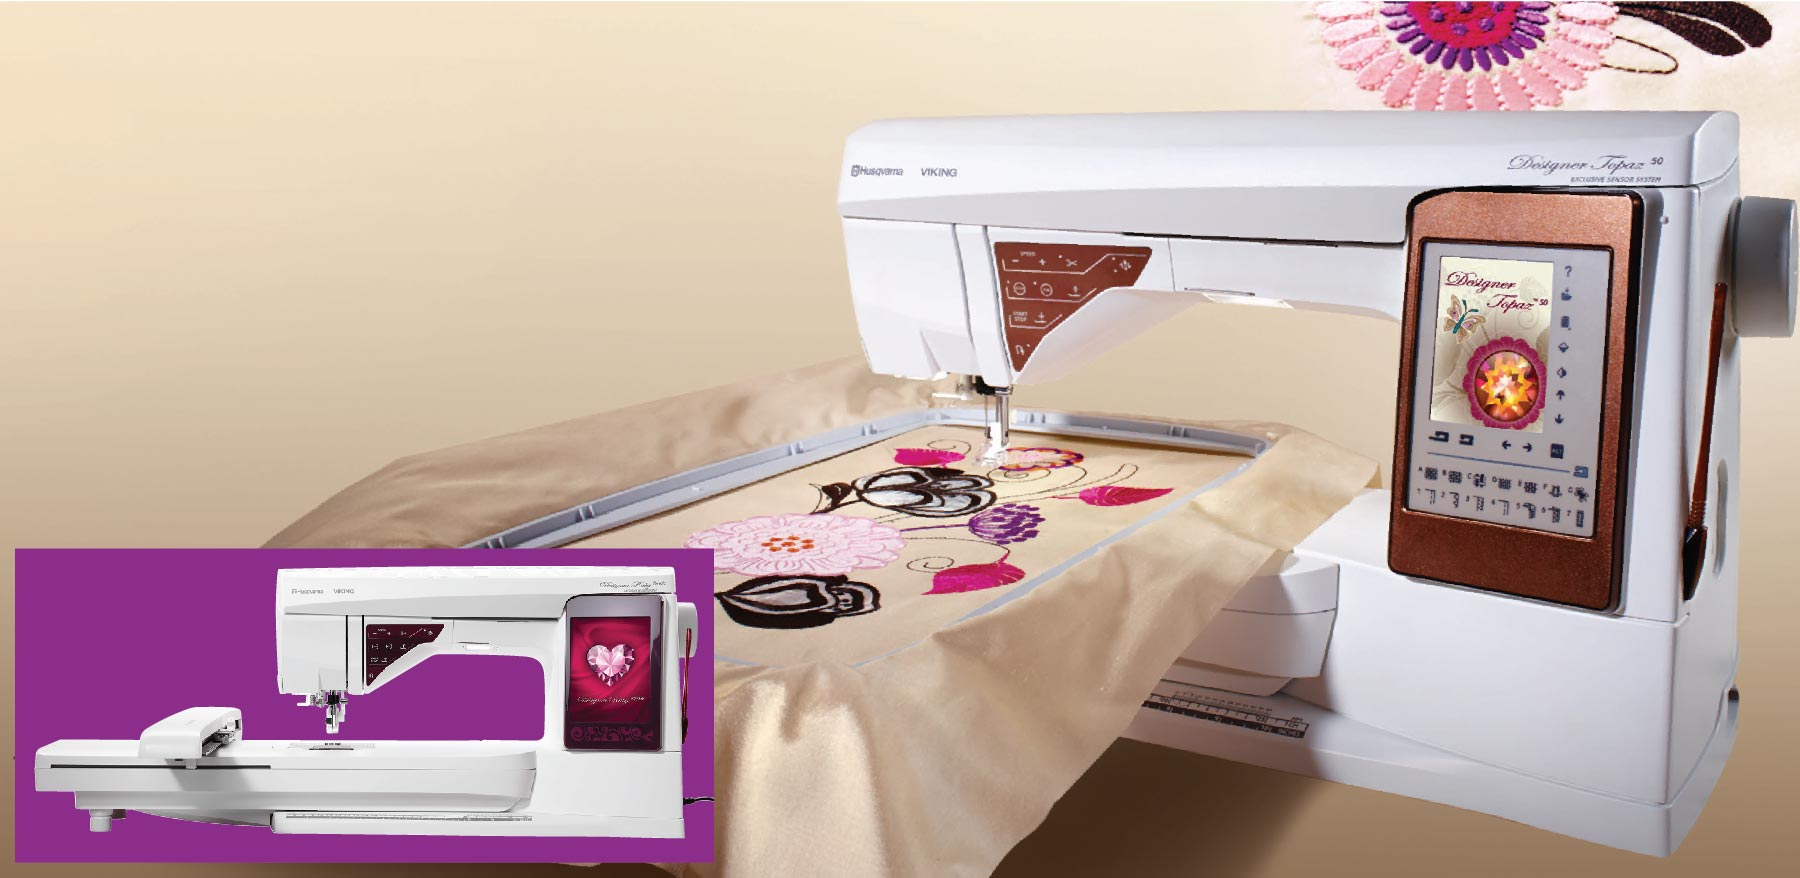 Creative World of Embroidery Promo